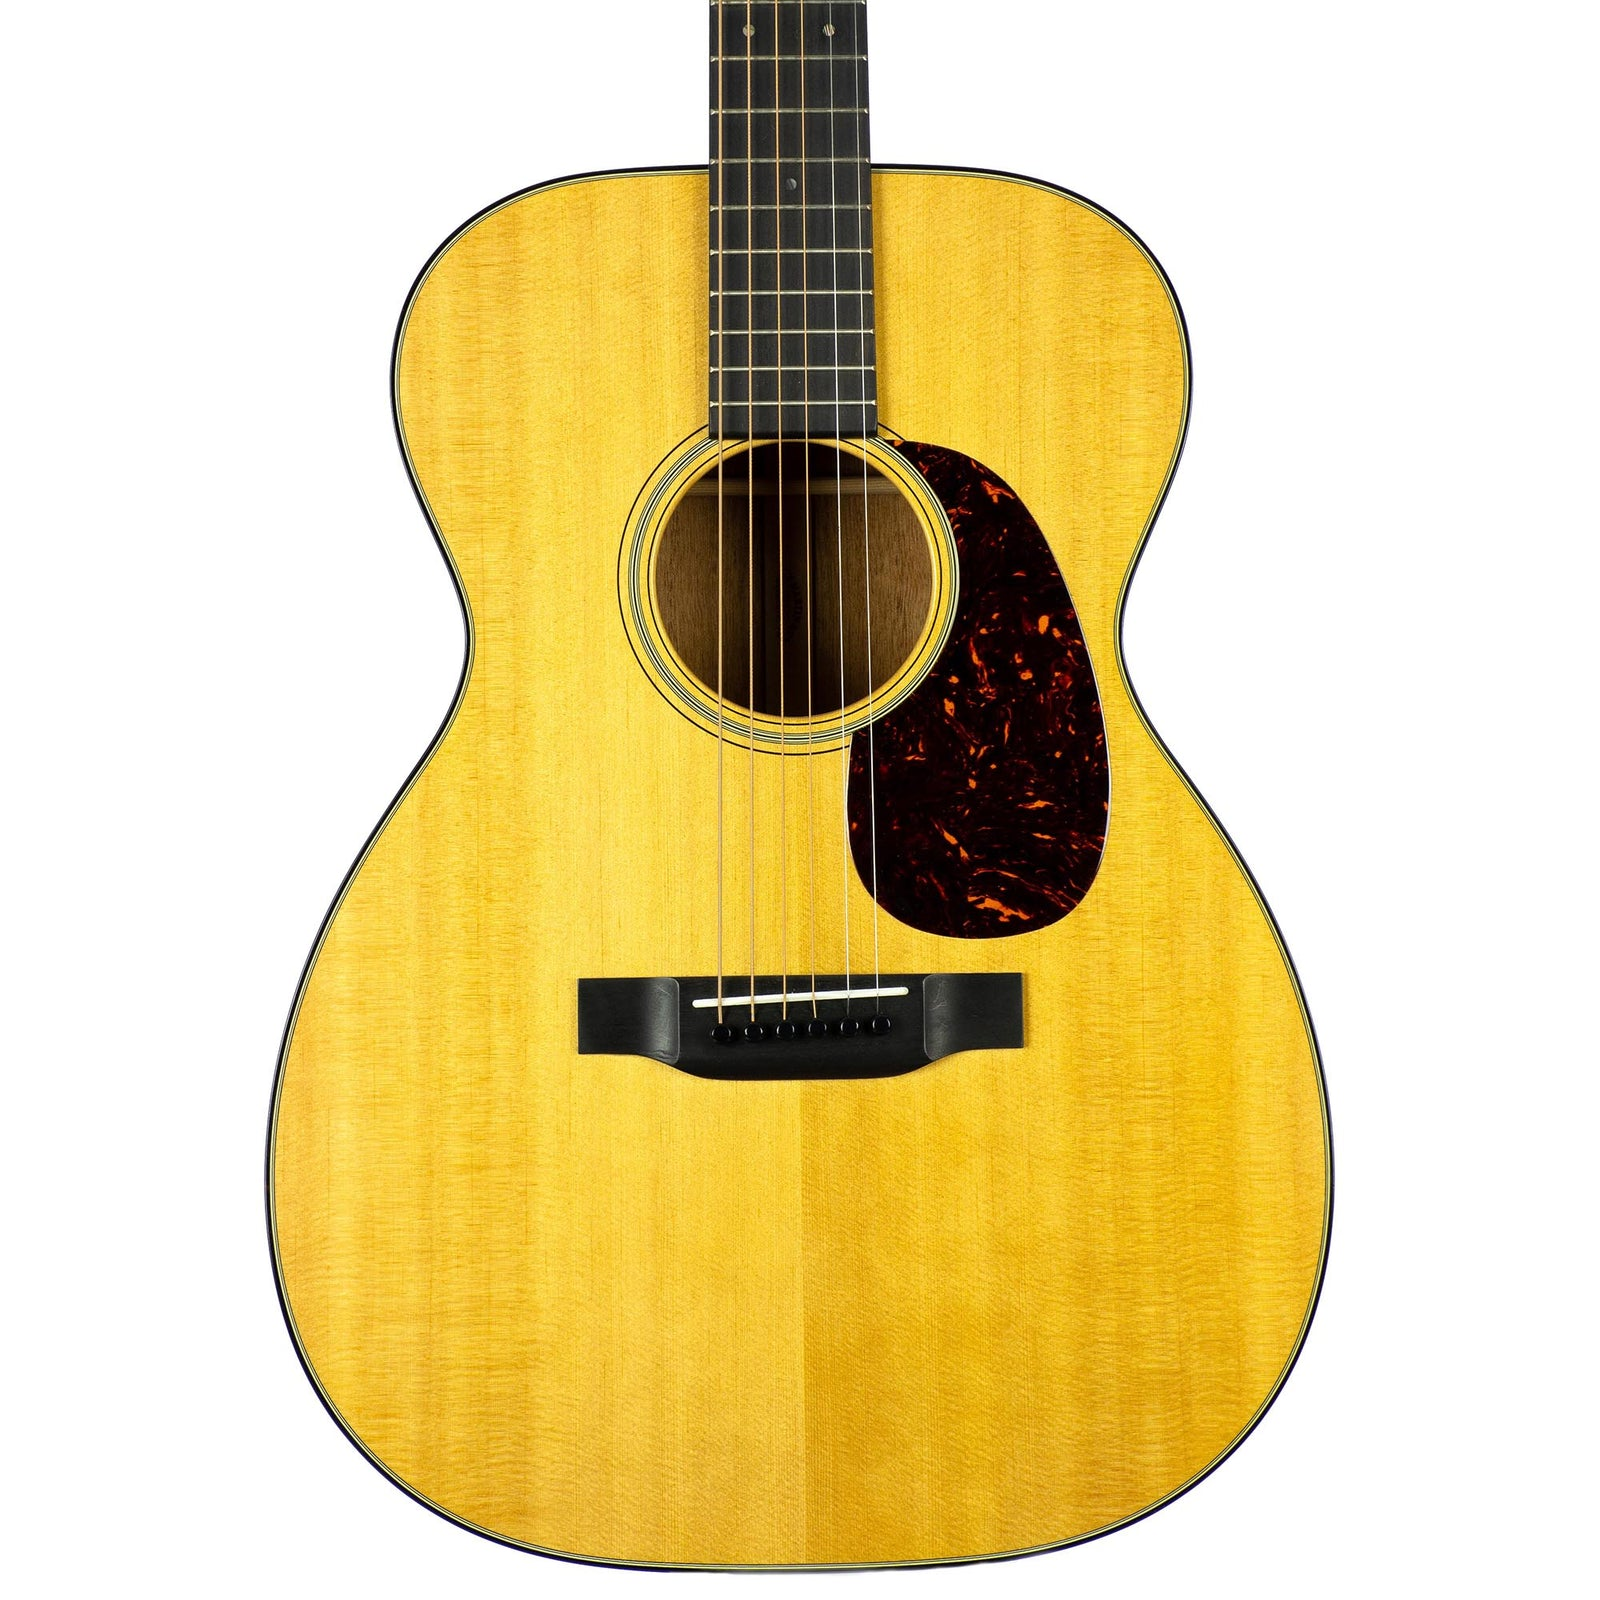 Martin 00-18 Acoustic With Case - Used